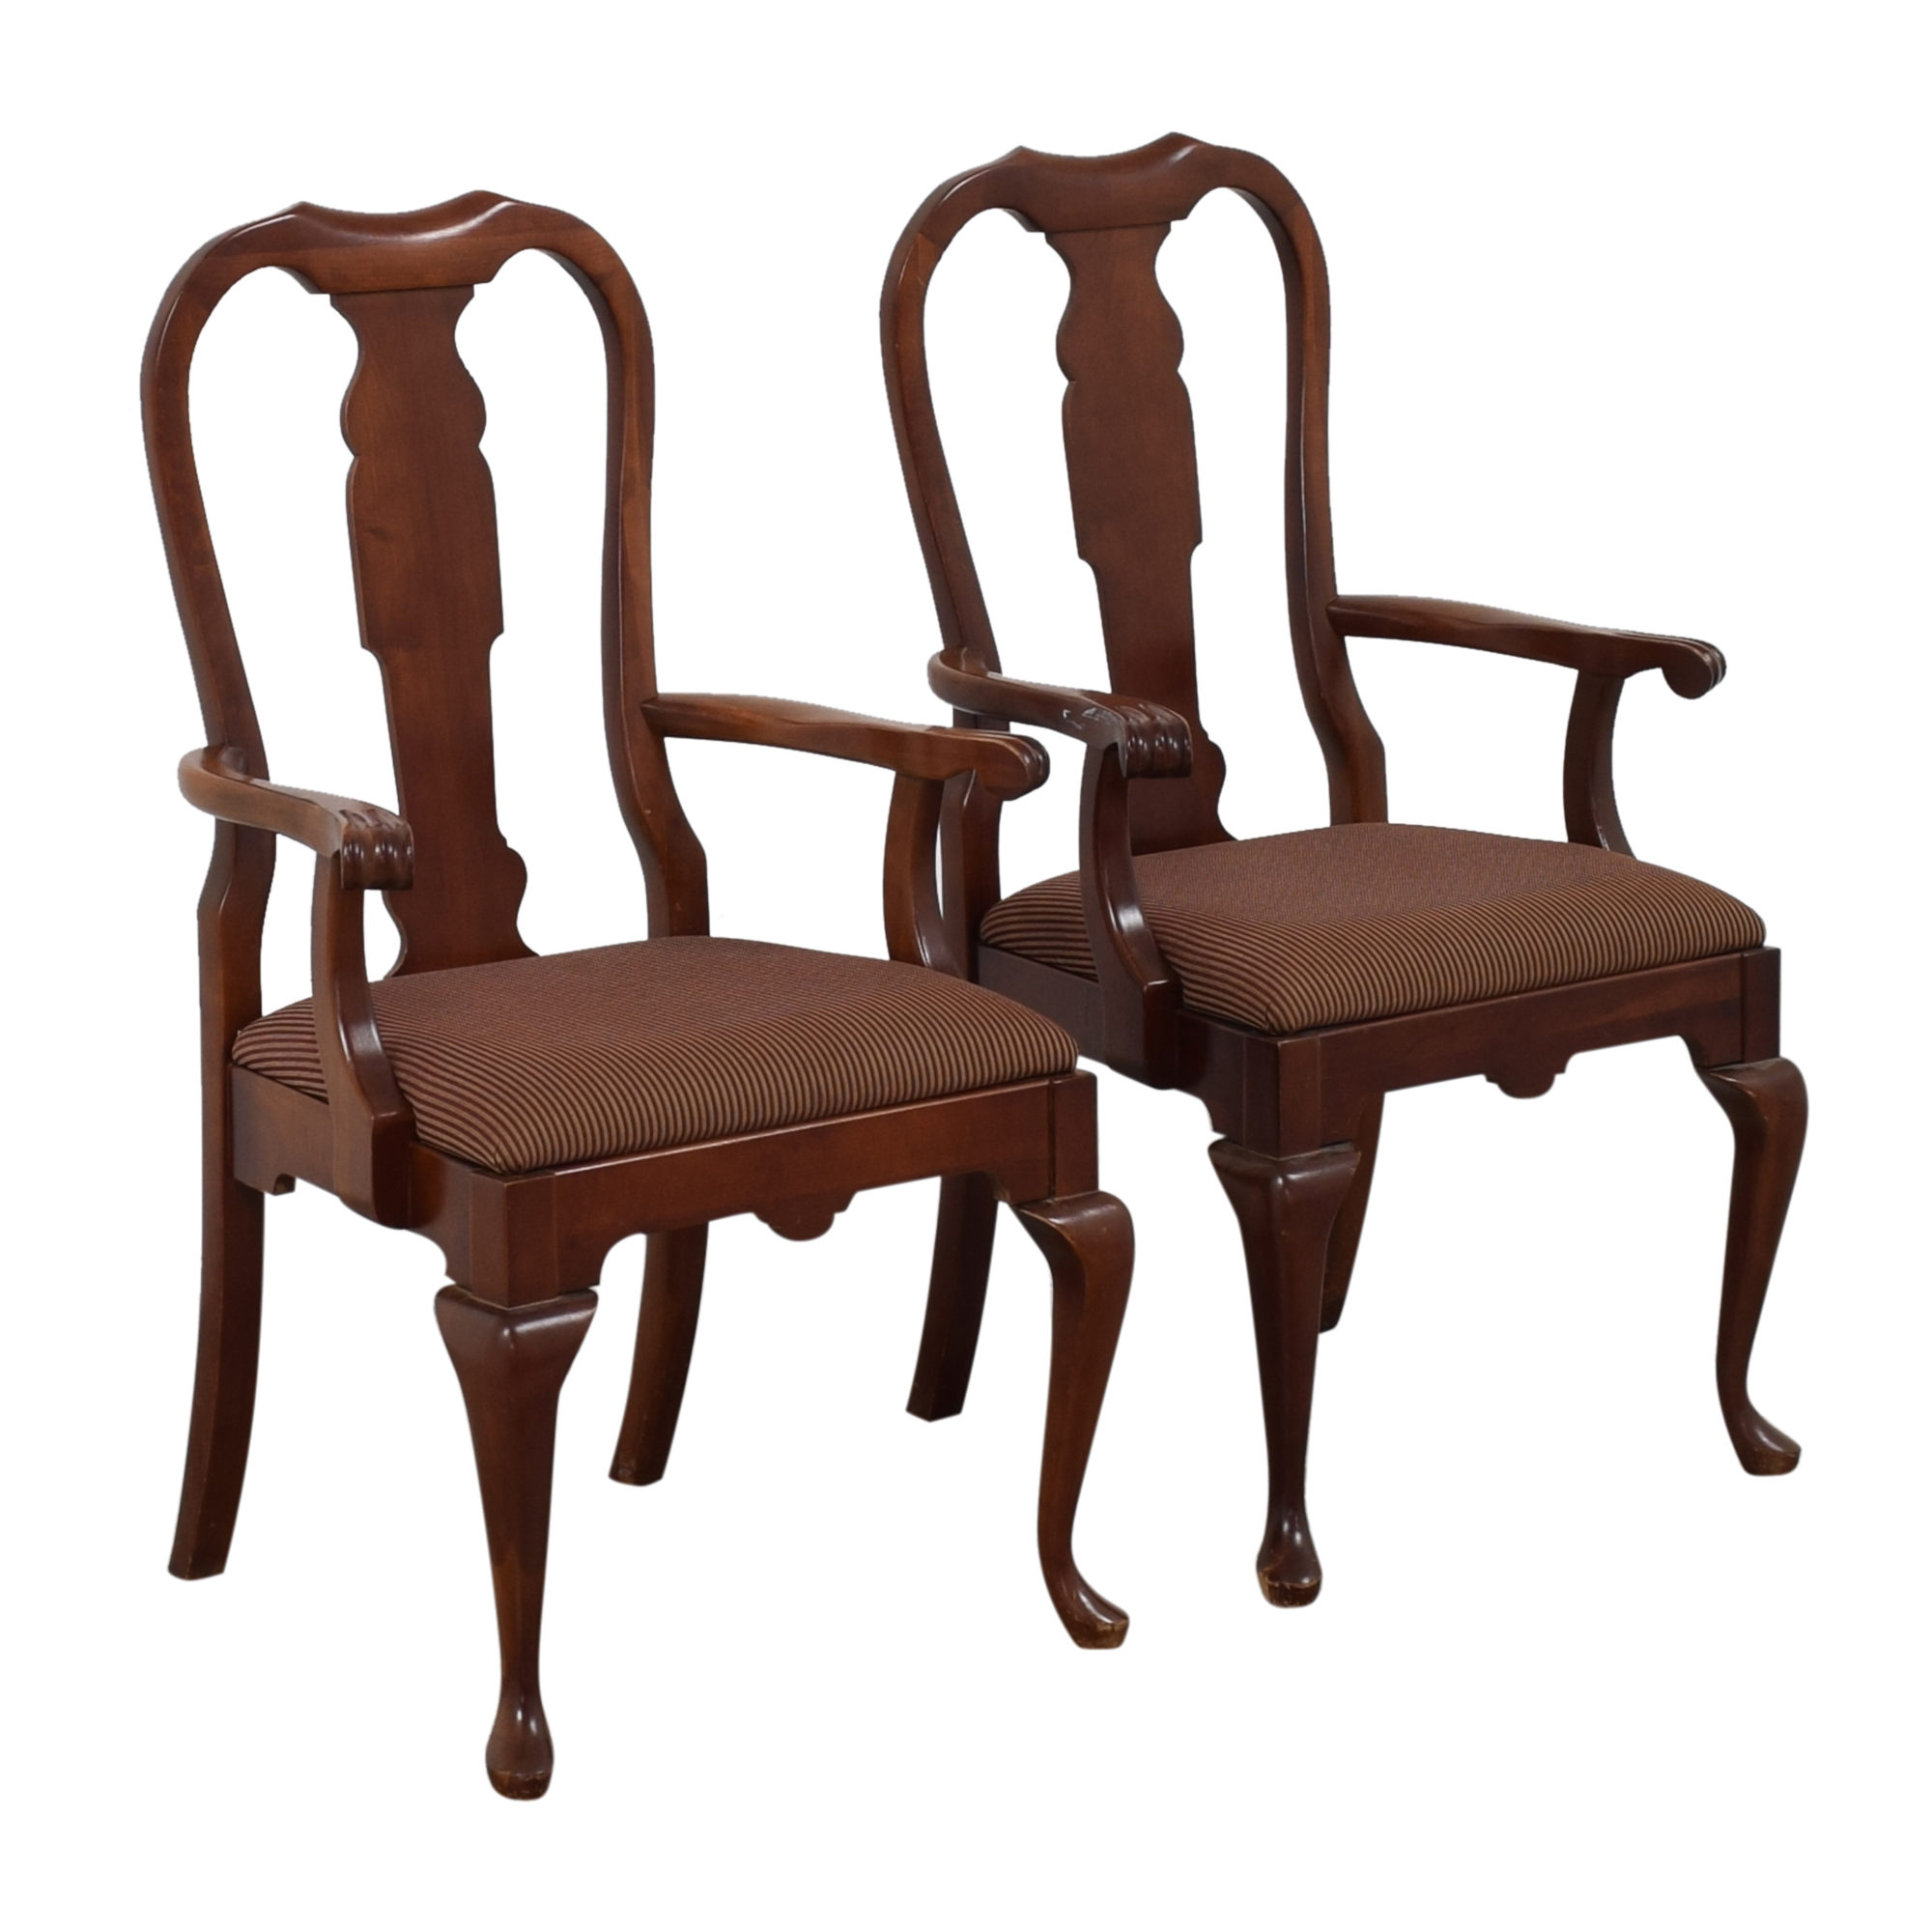 Pennsylvania House Queen Anne Dining Arm Chairs / Dining Chairs